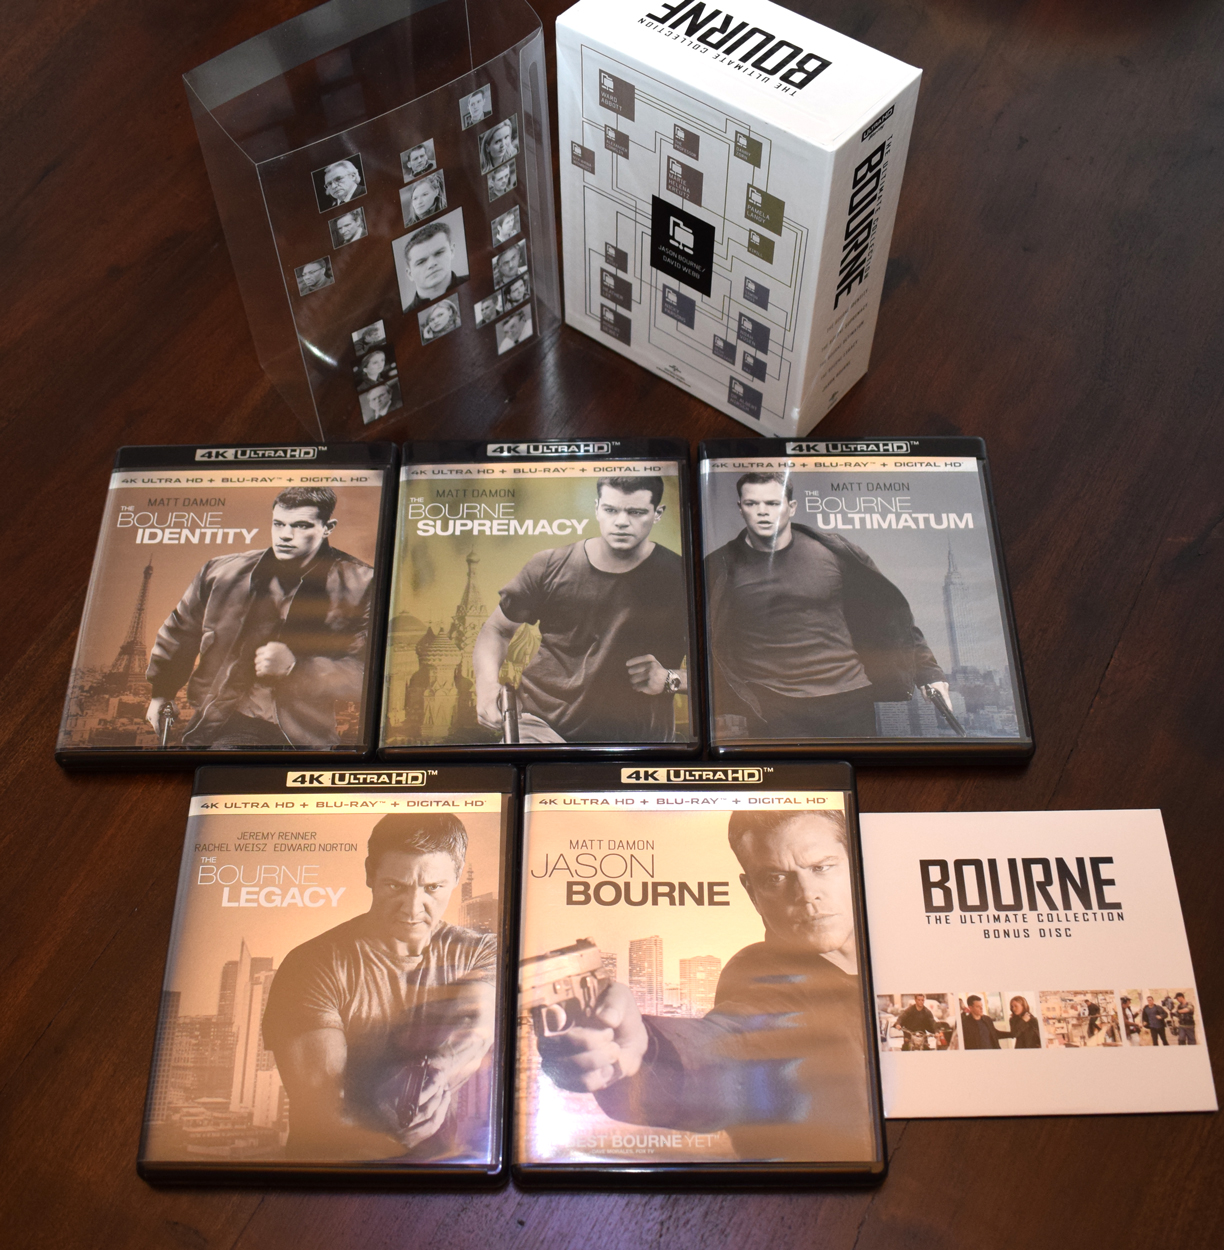 Bourne The Ultimate Collection Ultra HD Blu-ray Review box set and contents